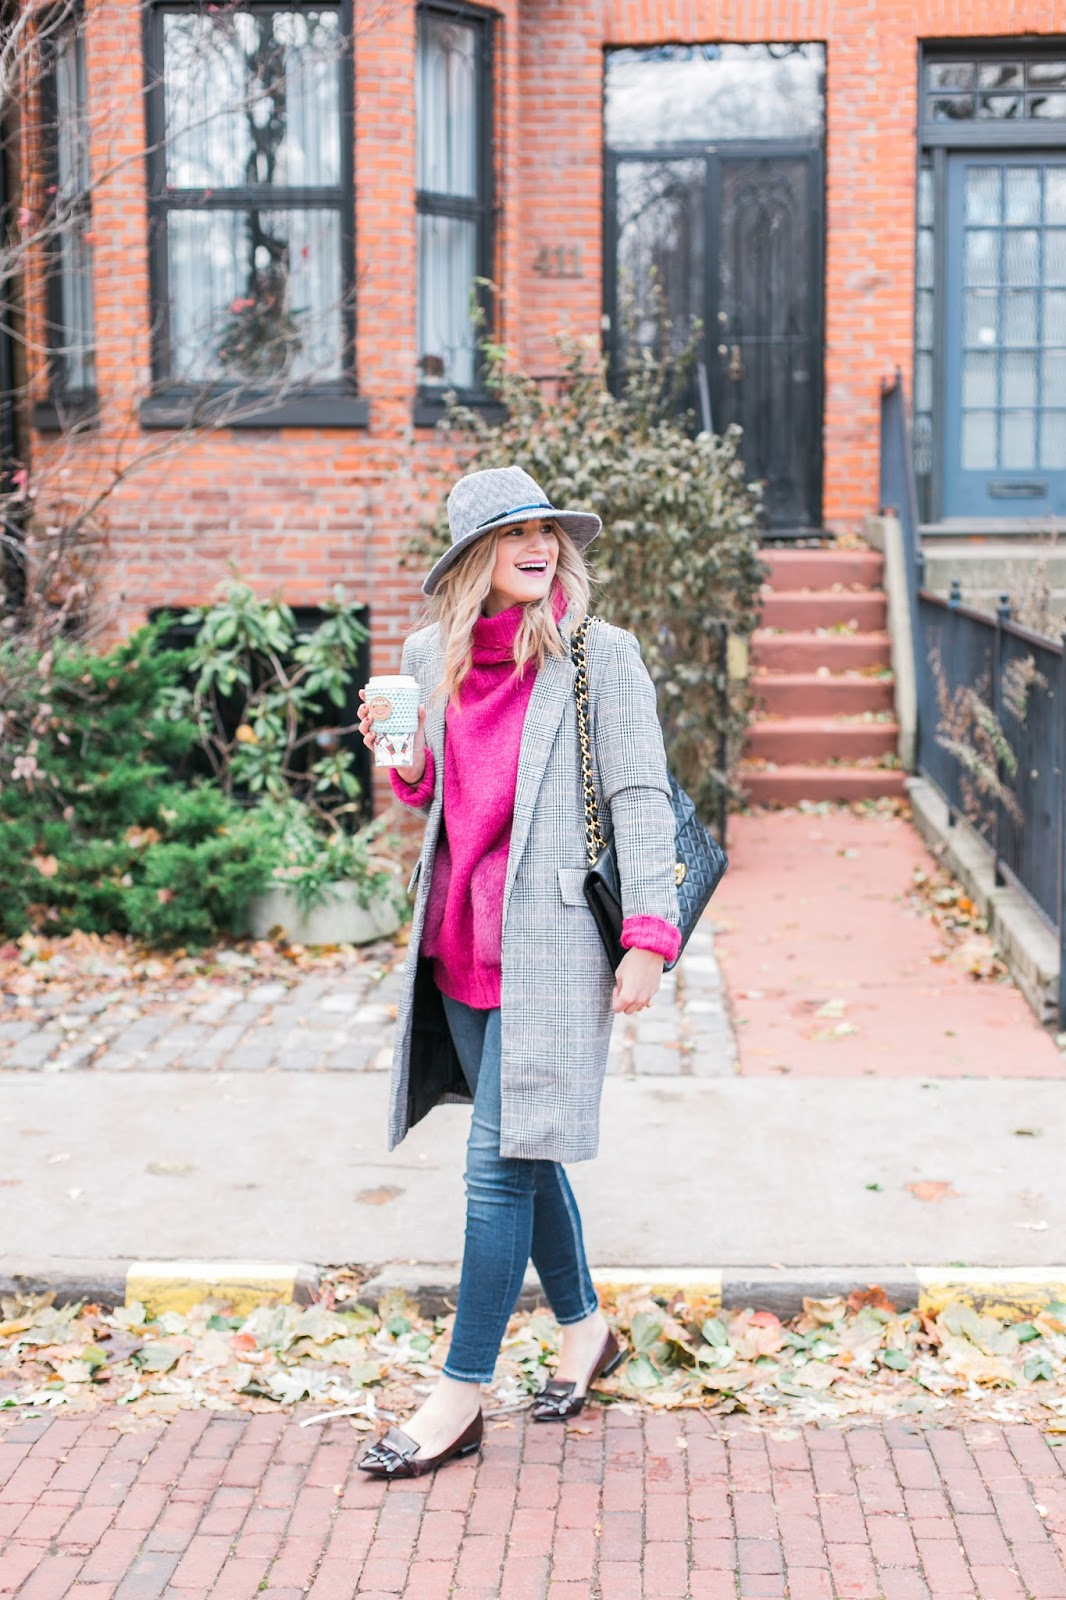 Bijuleni | How To Dress Like a French Girl  - Hat,  SheIN longline blazer, Vintage Chanel Handbag, Nine West maroon flats, Silver Jeans skinny jeans and Zara pink sweater.